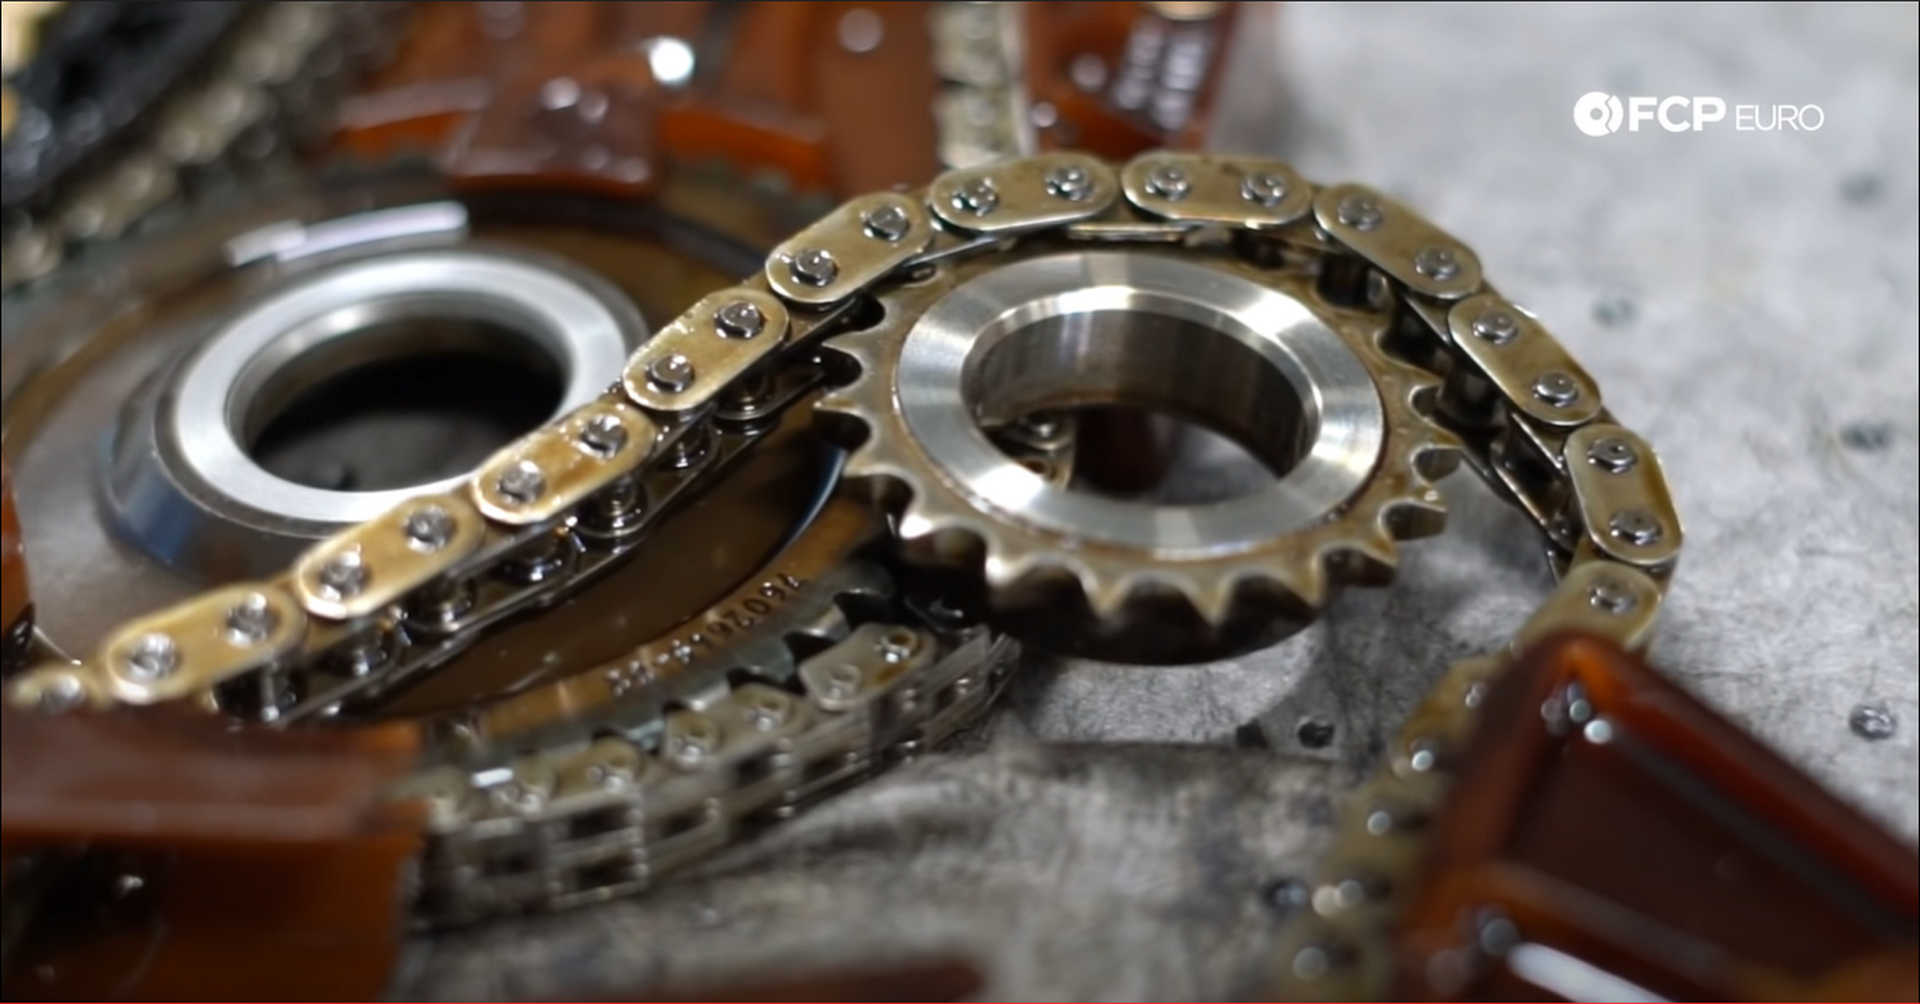 DIY BMW N20 Timing Chain old timing chain sprocket